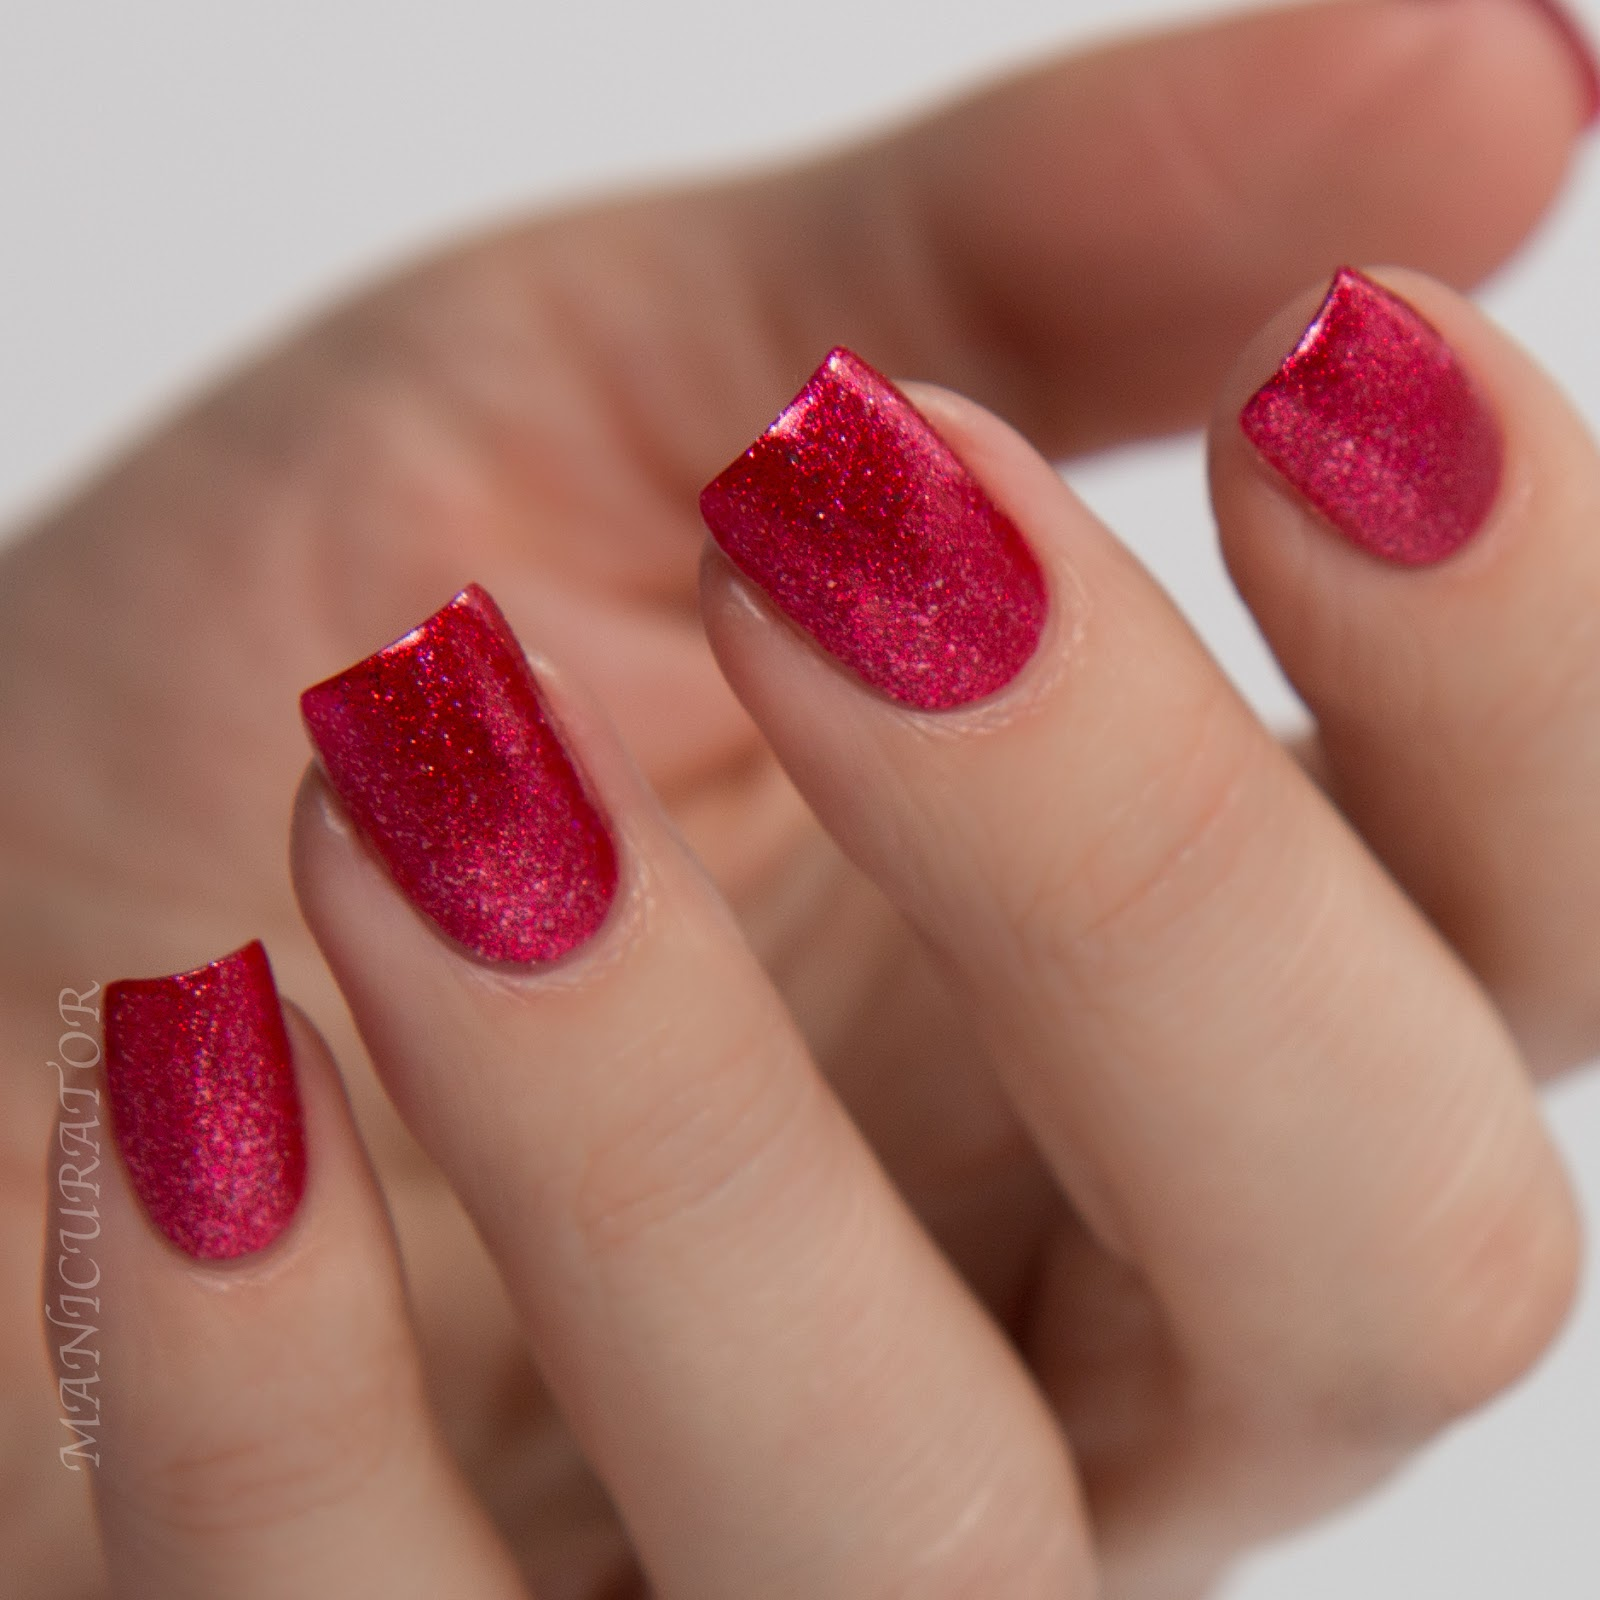 KBShimmer Birthstone Collection 2016 - Nail Art: Opposites Attract ...